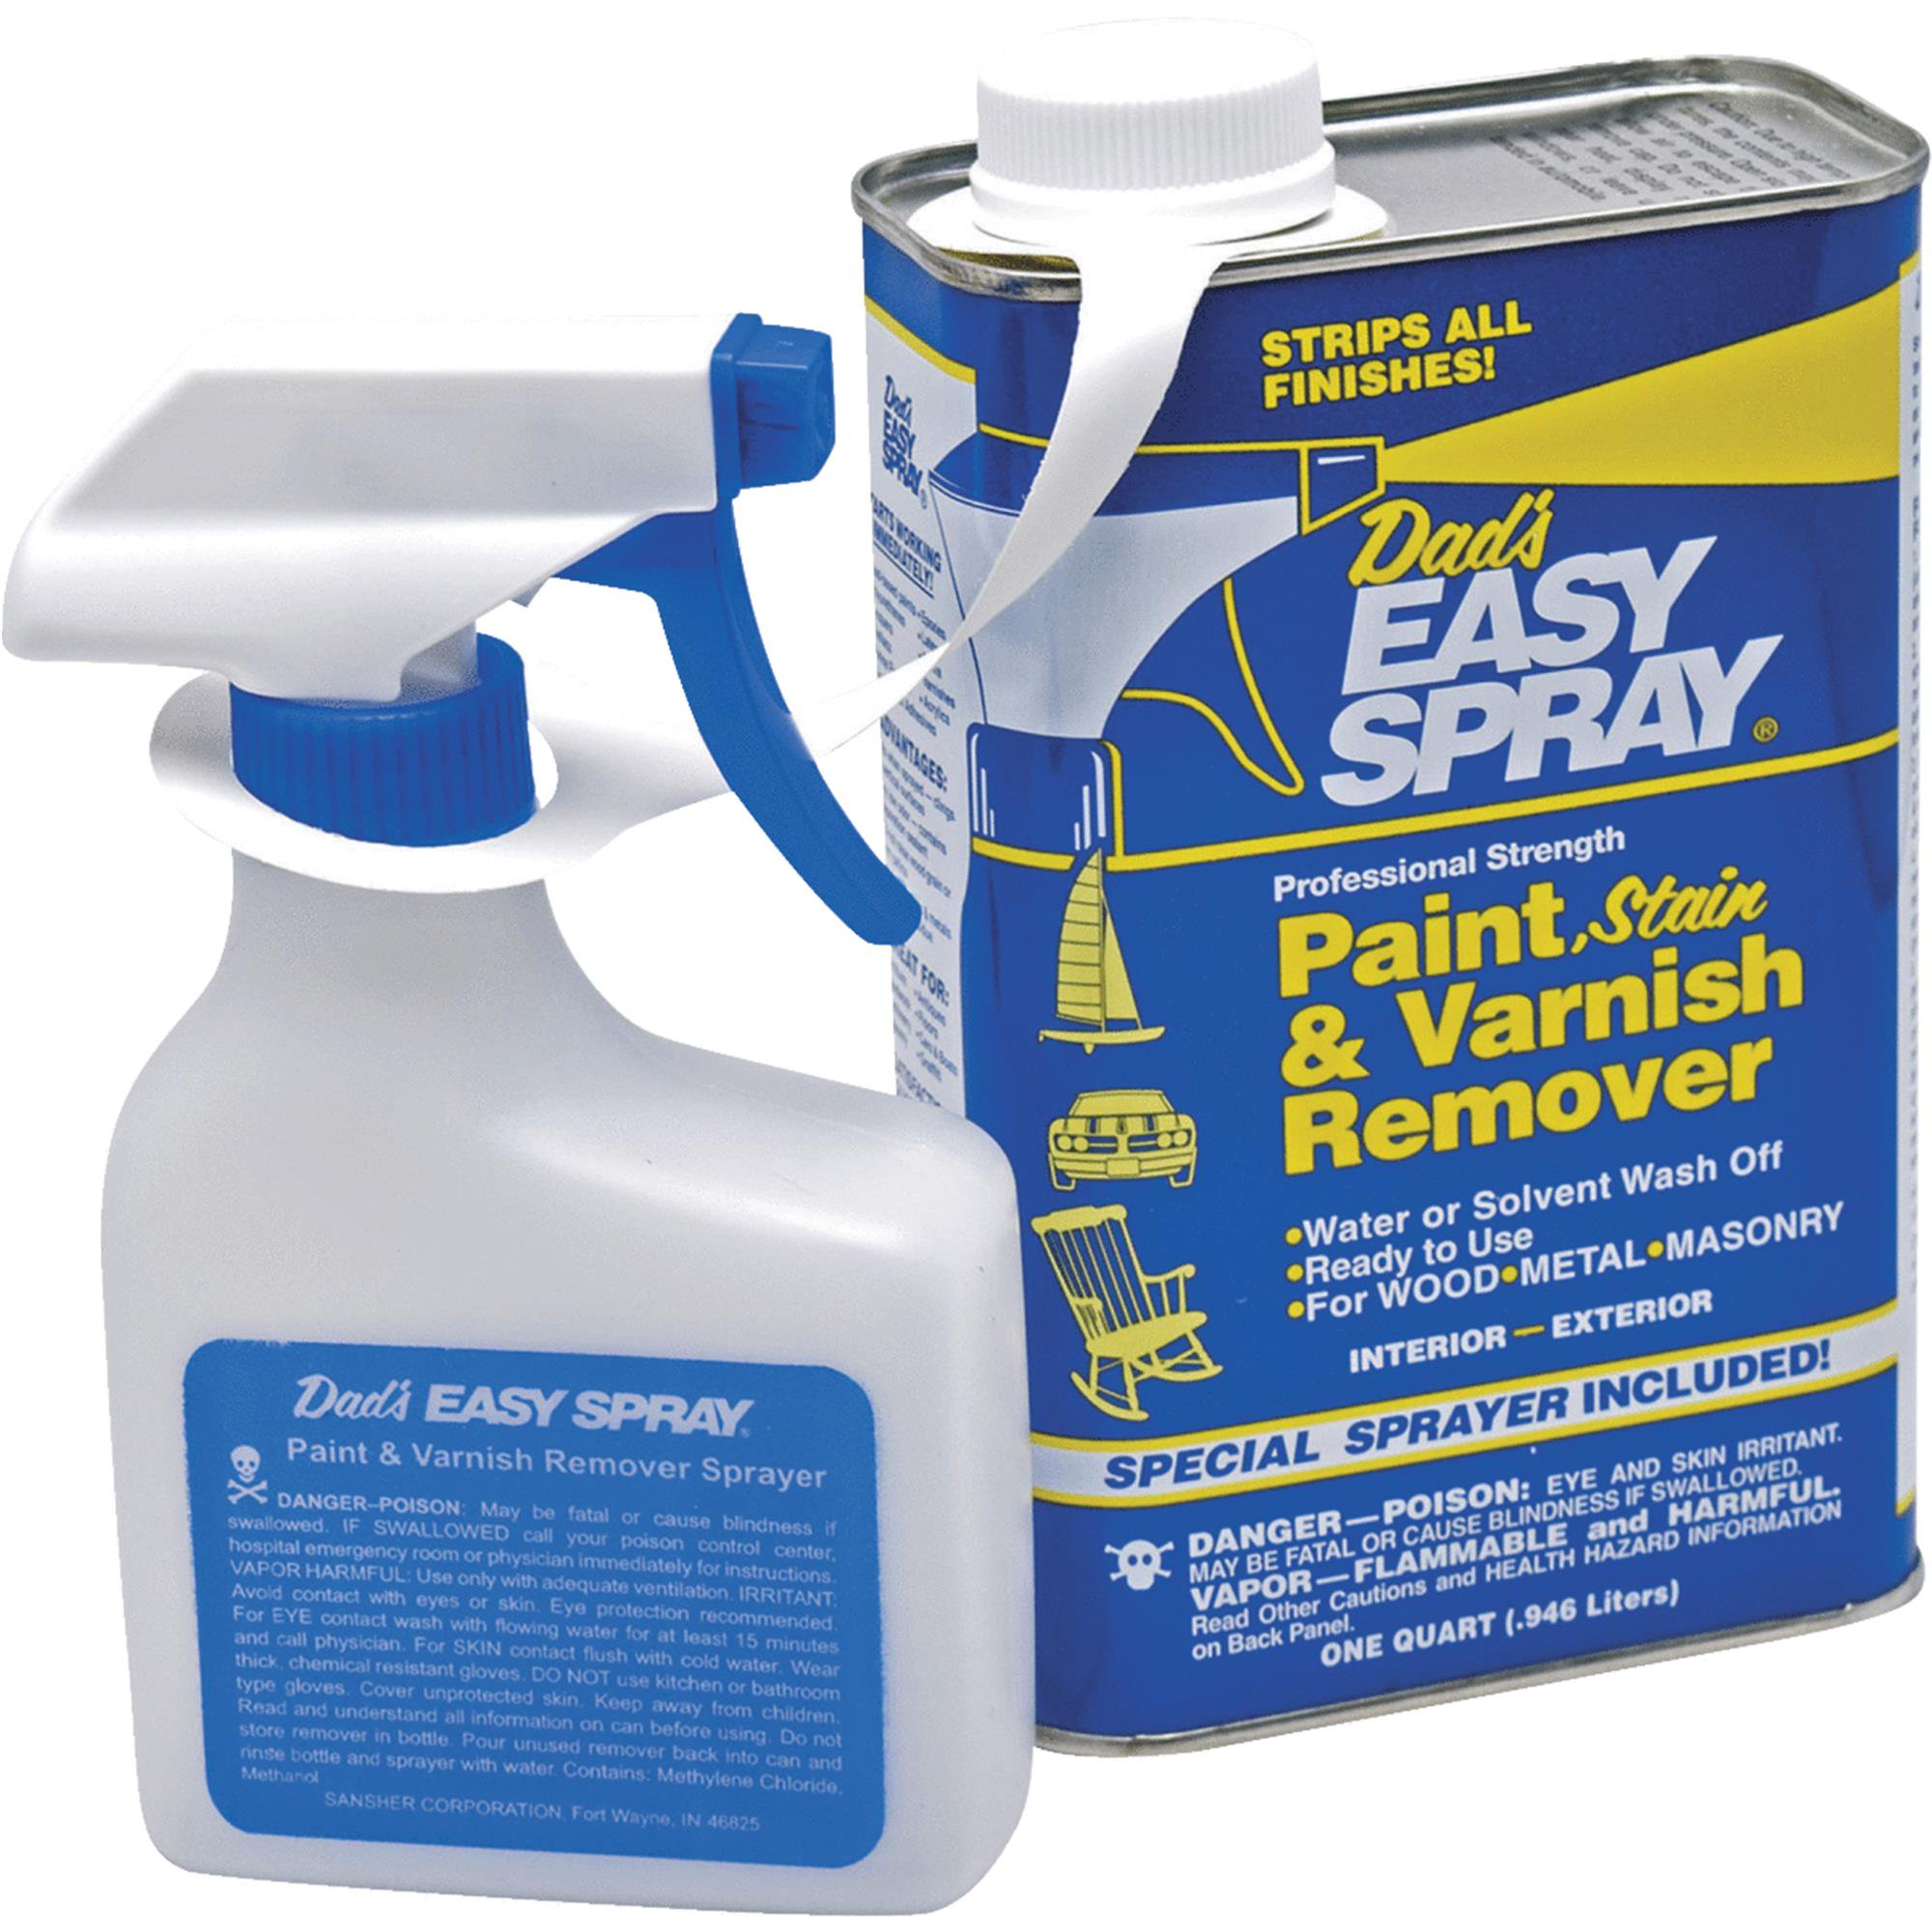 Dad's Easy Spray Stain, Pant & Varnish Stripper by Sansher Corp.